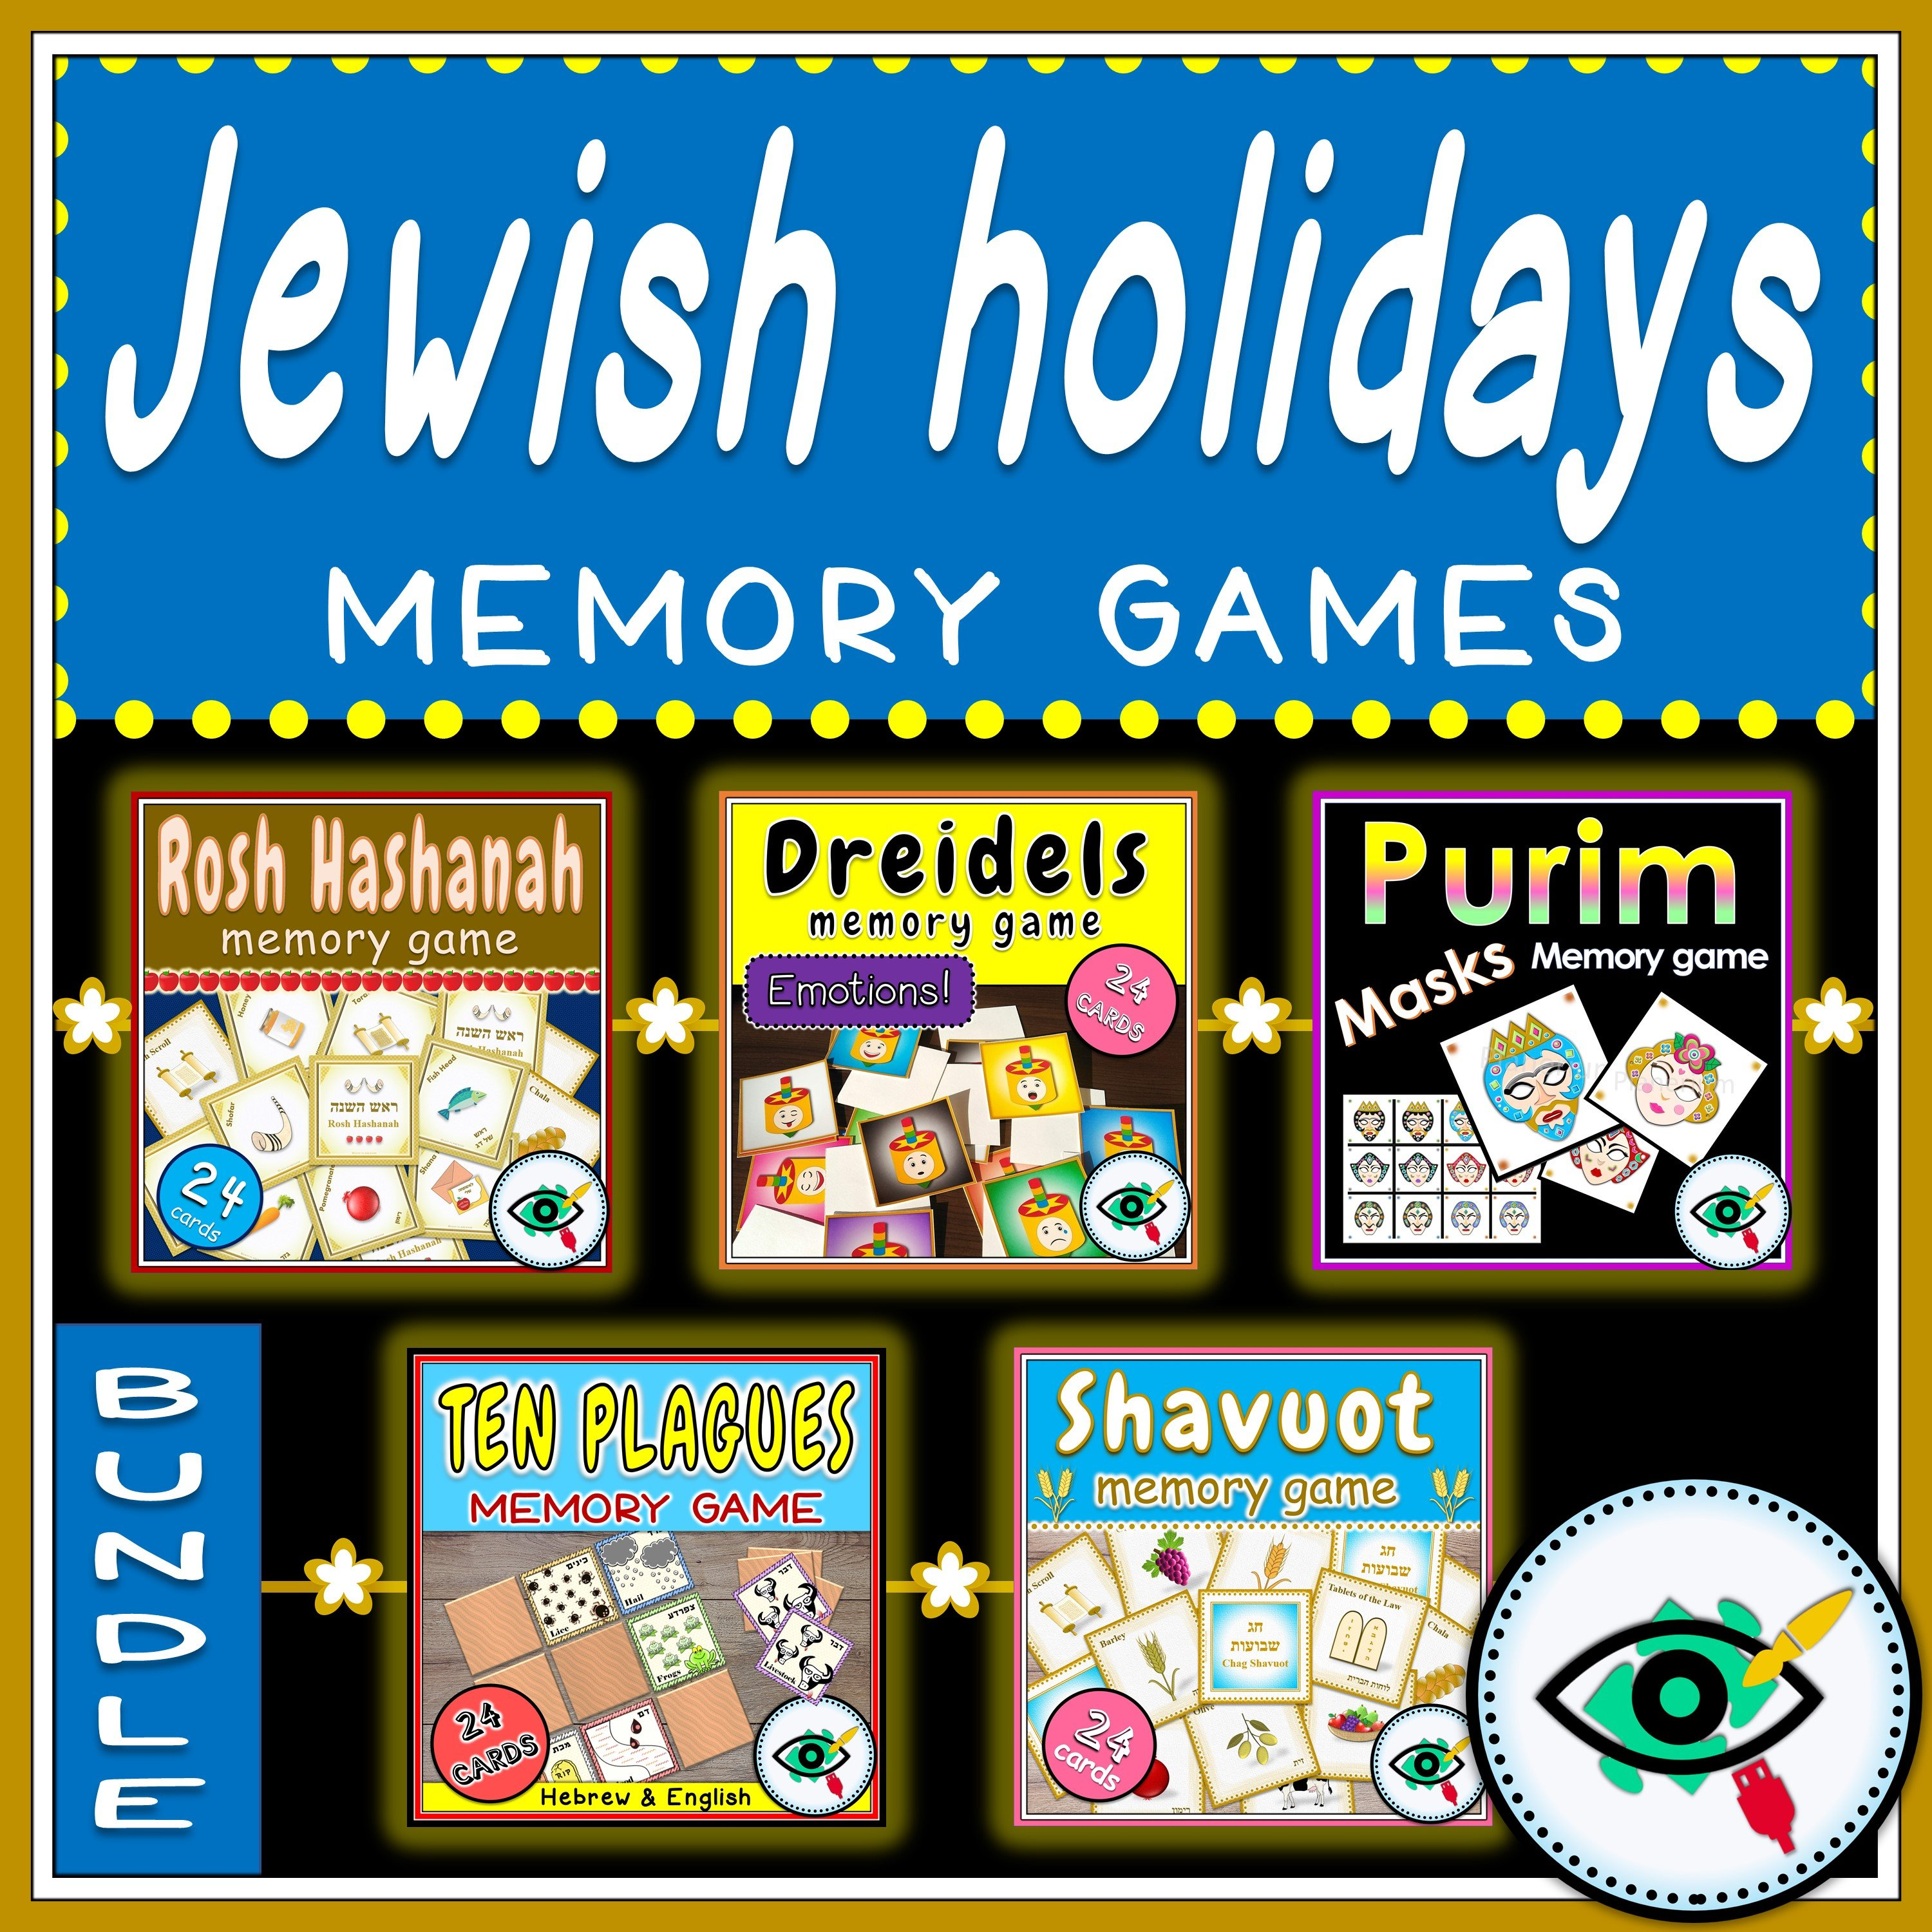 photo about Hebrew Games Printable titled Jewish Vacations Memory Video games Offer